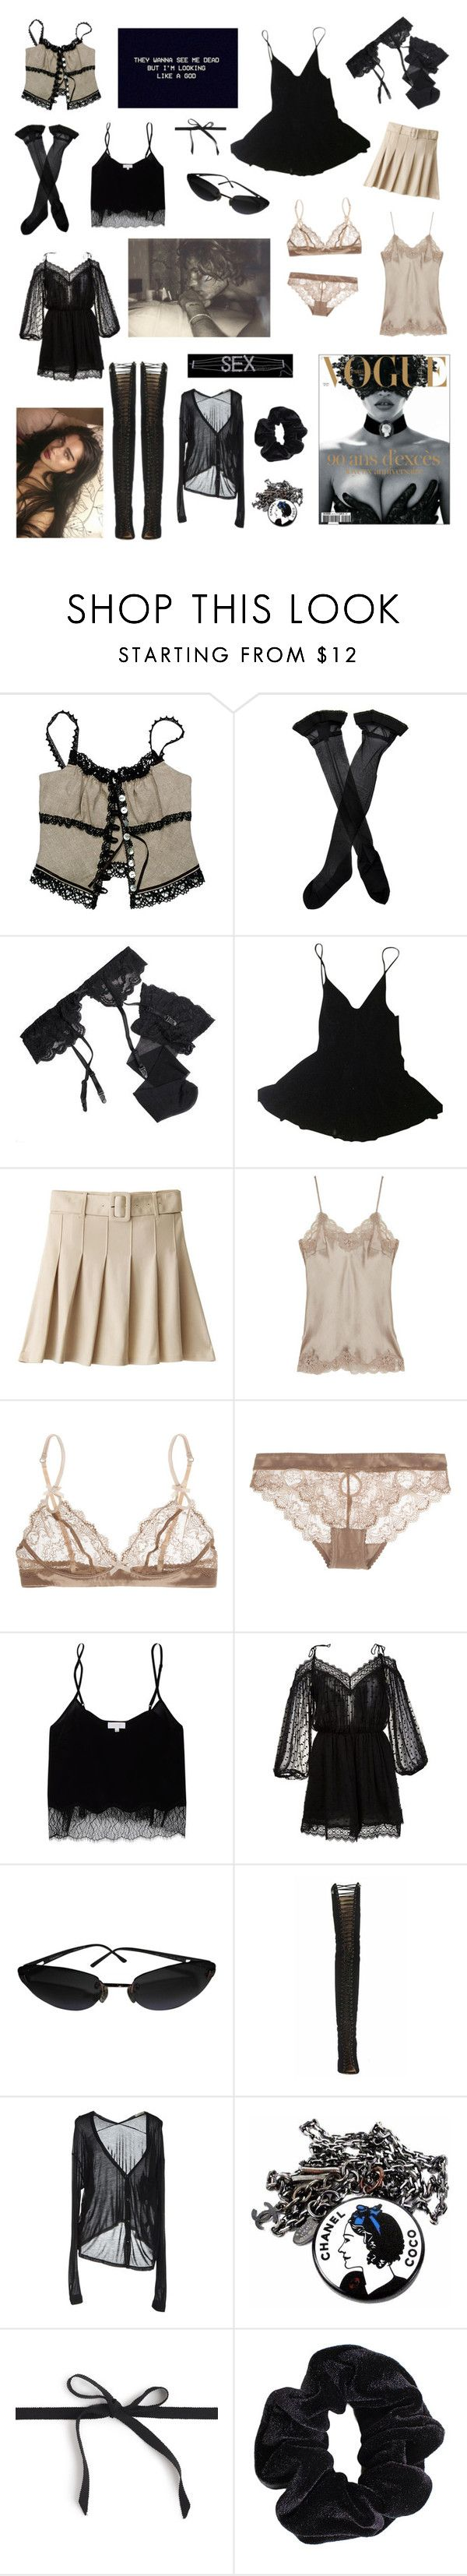 """Untitled #380"" by brookej659 ❤ liked on Polyvore featuring Razu Mikhina, Trasparenze, Reger by Janet Reger, HAMNETT, Gold Hawk, Elle Macpherson Intimates, Wilfred, Zimmermann, Chanel and Alternative"